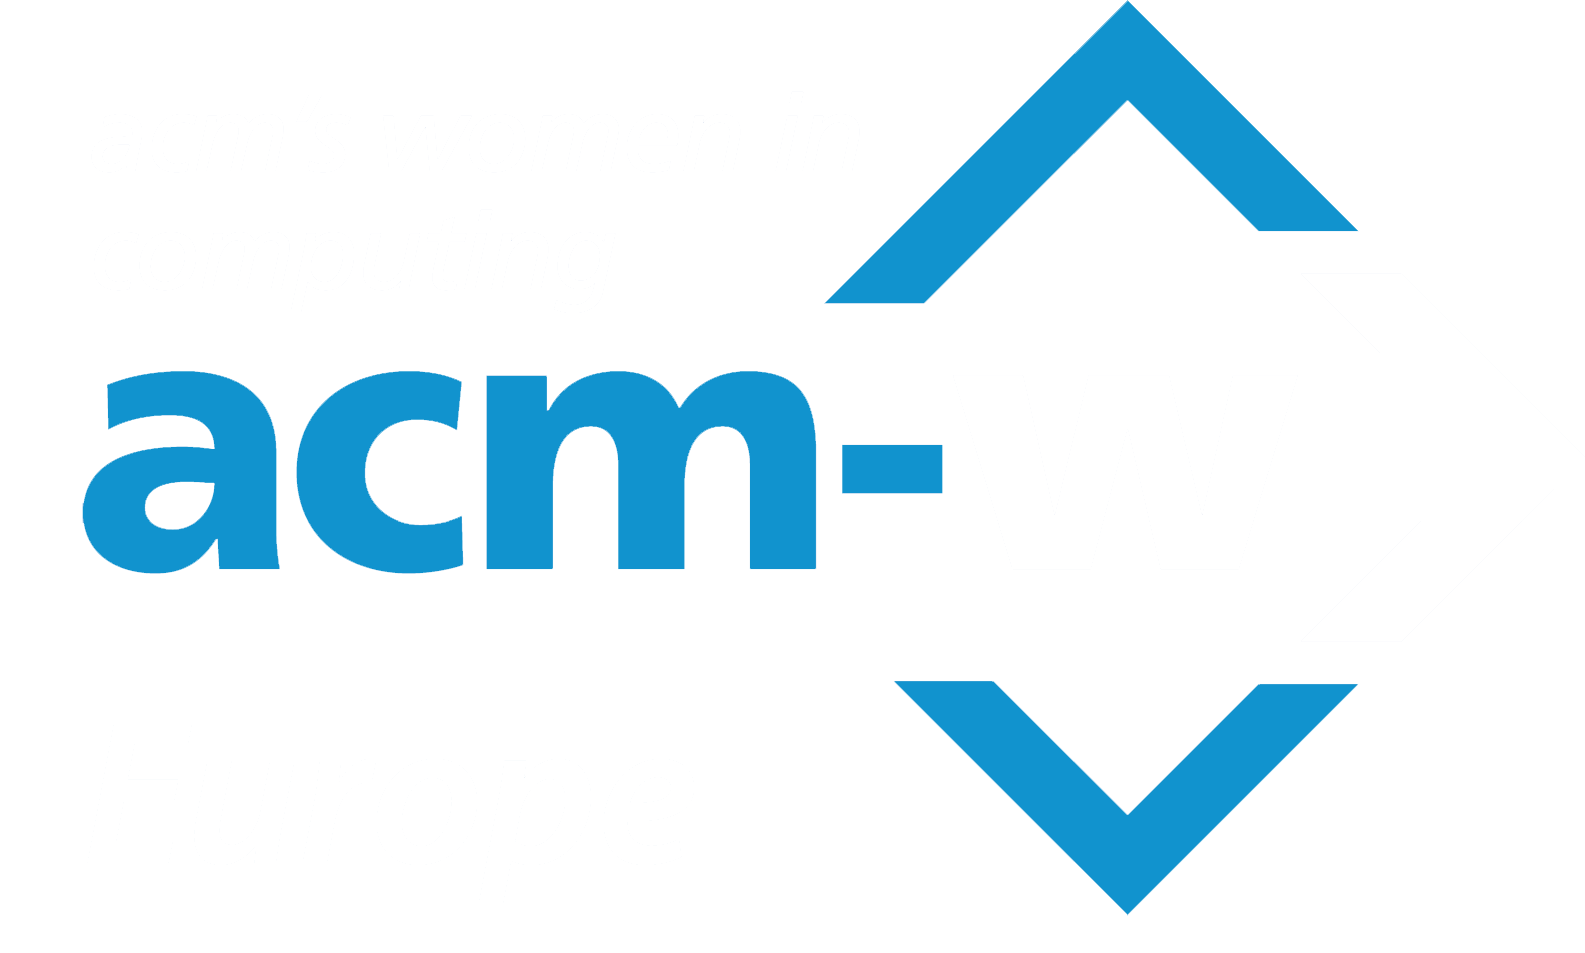 Keynotes - womENcourage 2019 - Association for Computing Machinery